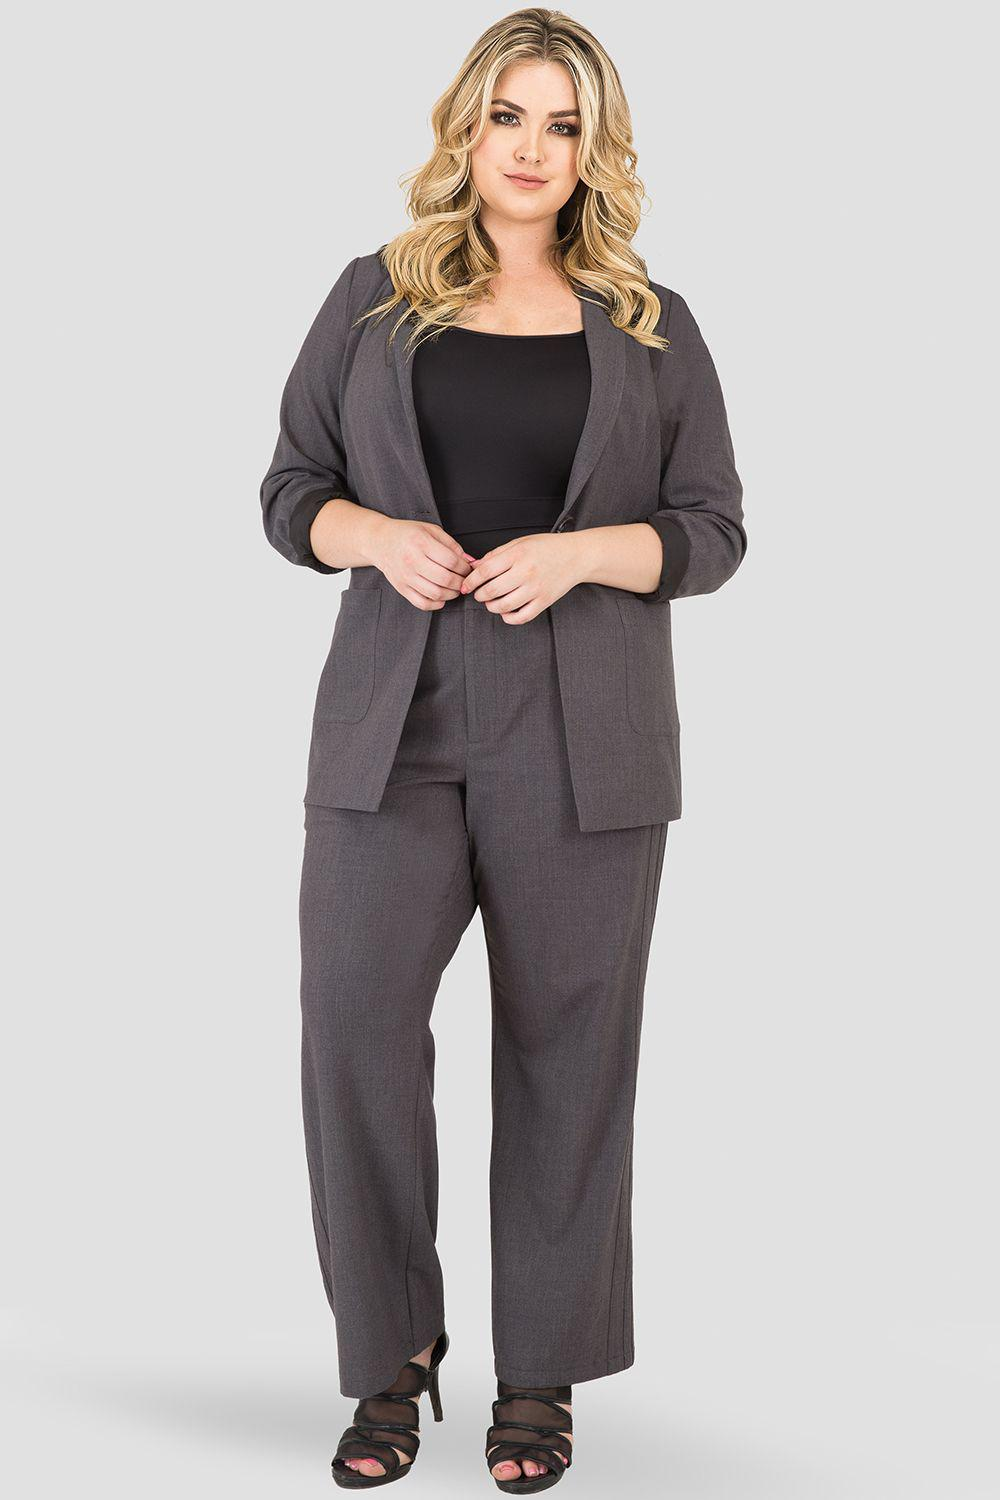 Plus Size Athletic Stripe High Waisted Wide Leg Suit Pants - Charcoal Gray